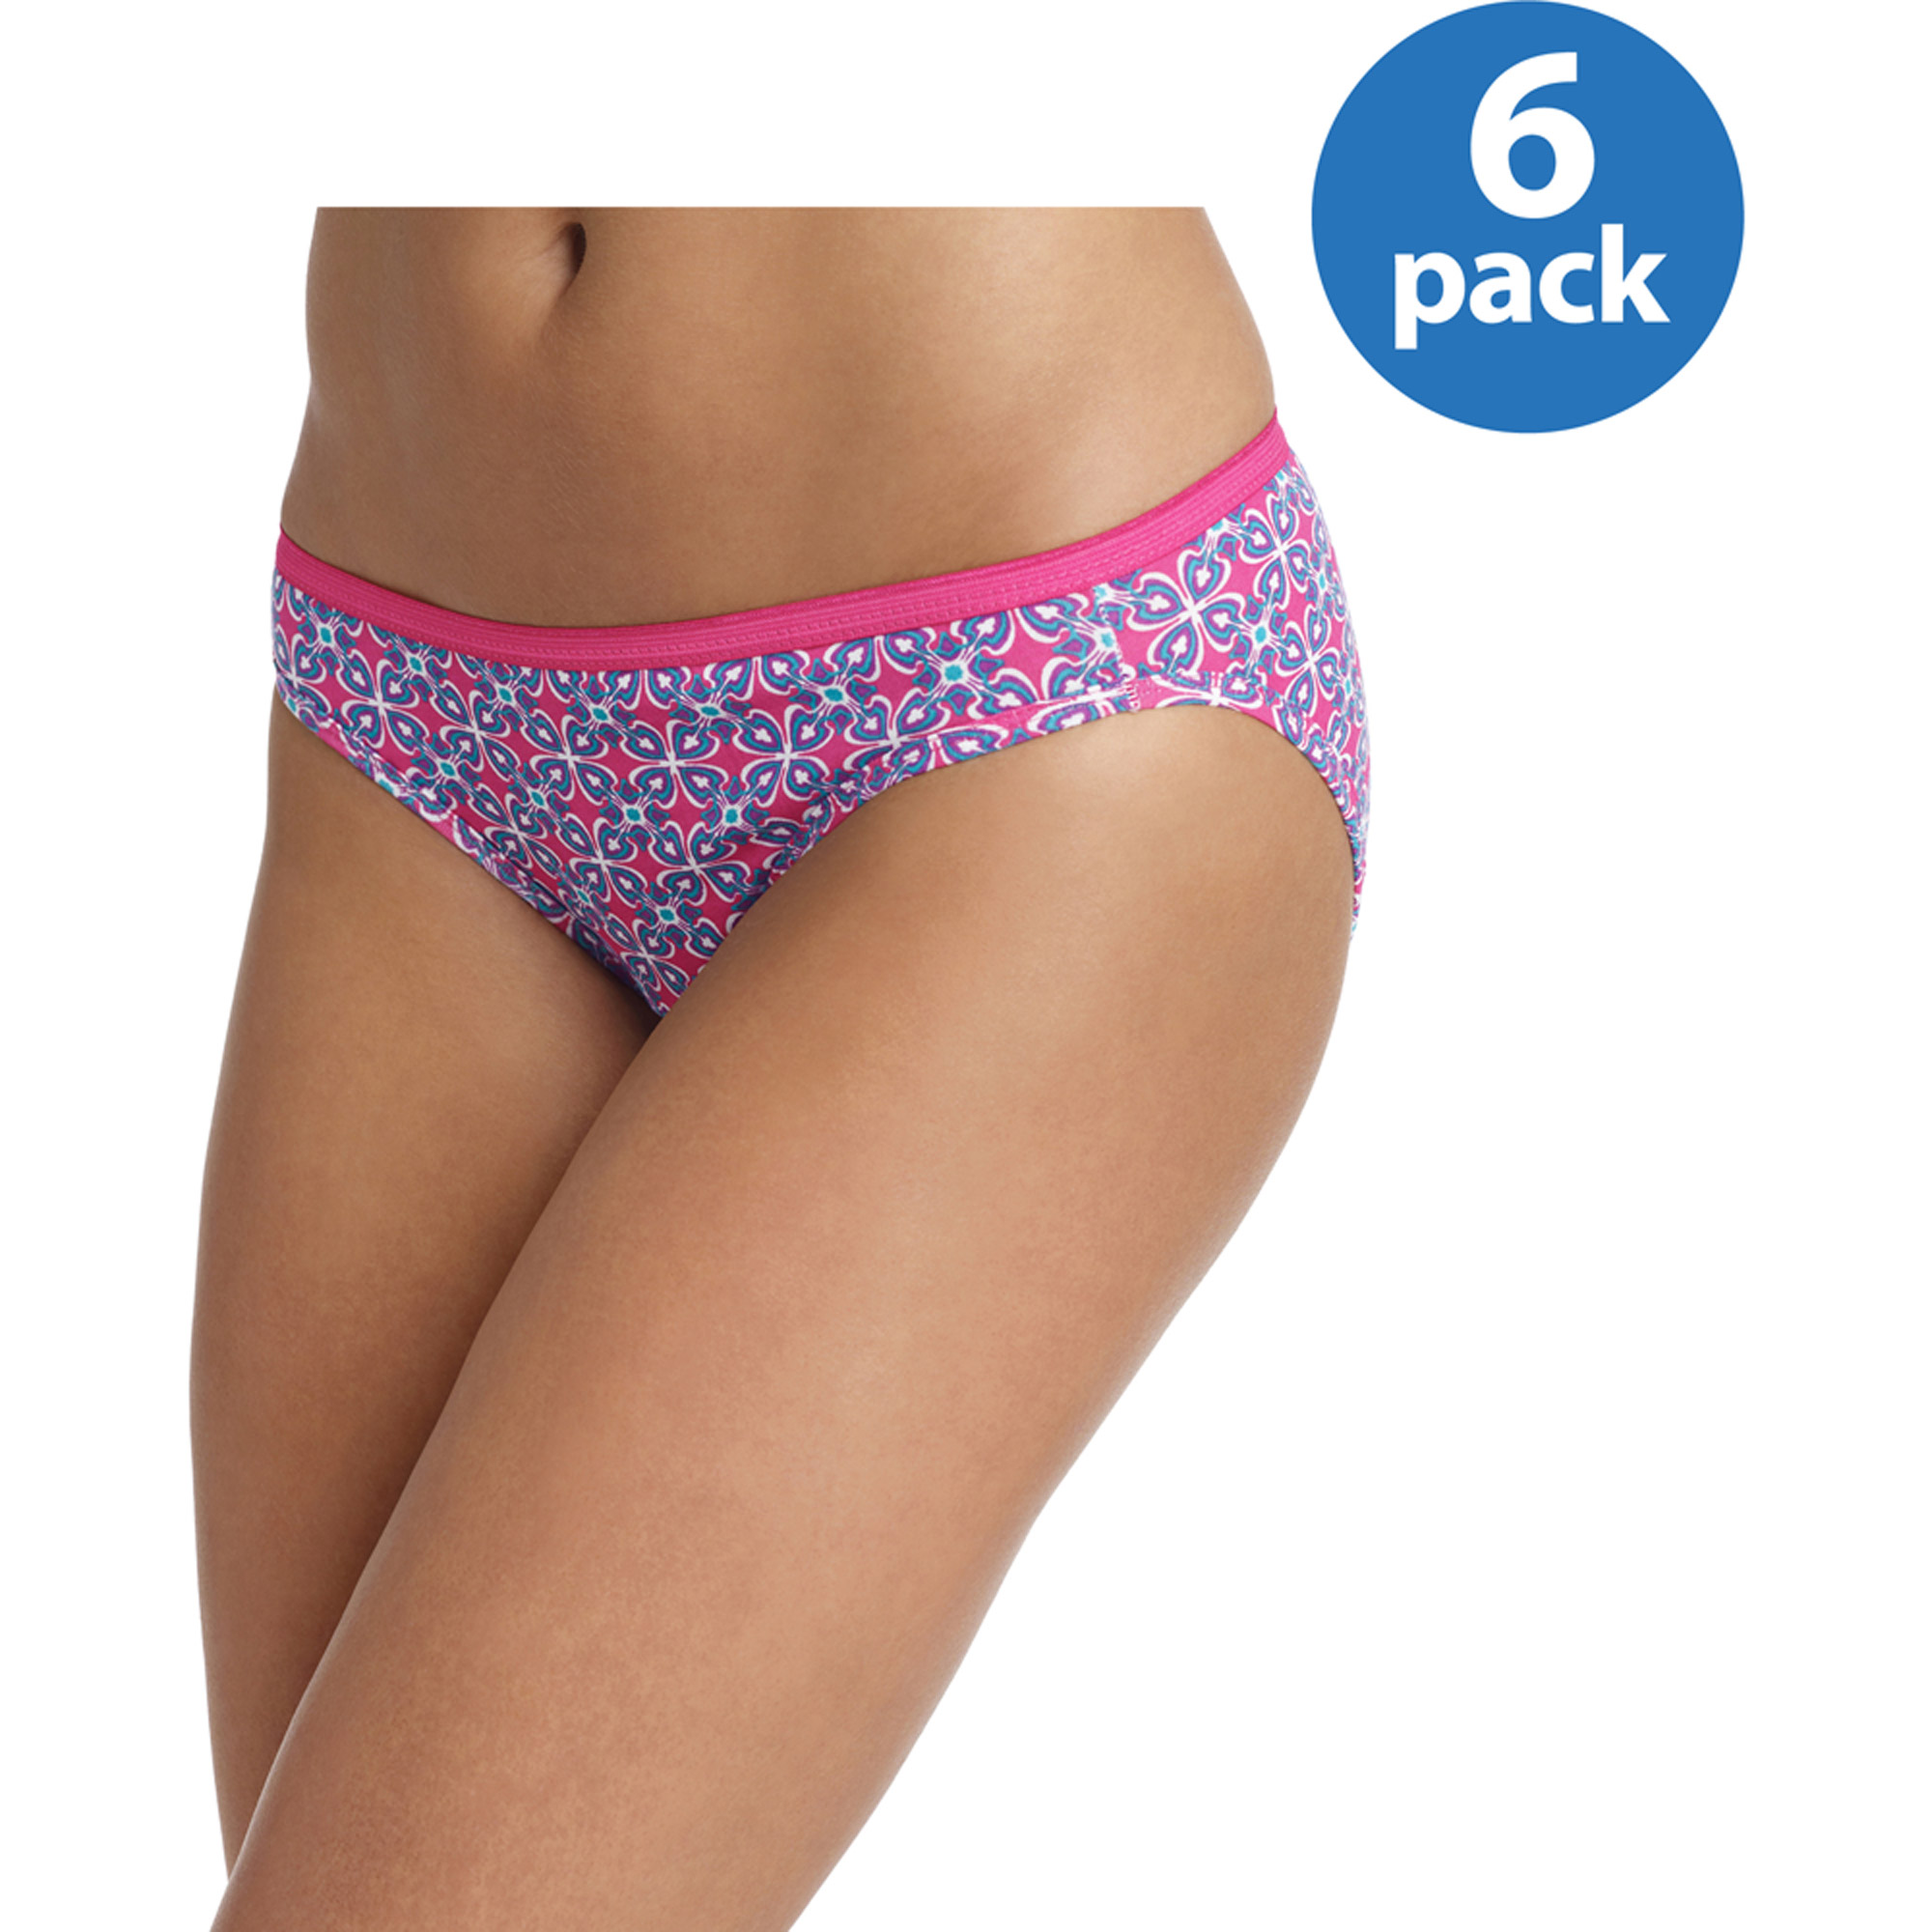 Hanes - Women's Cotton Bikini Panties, 6-Pack, Assorted, Size 9